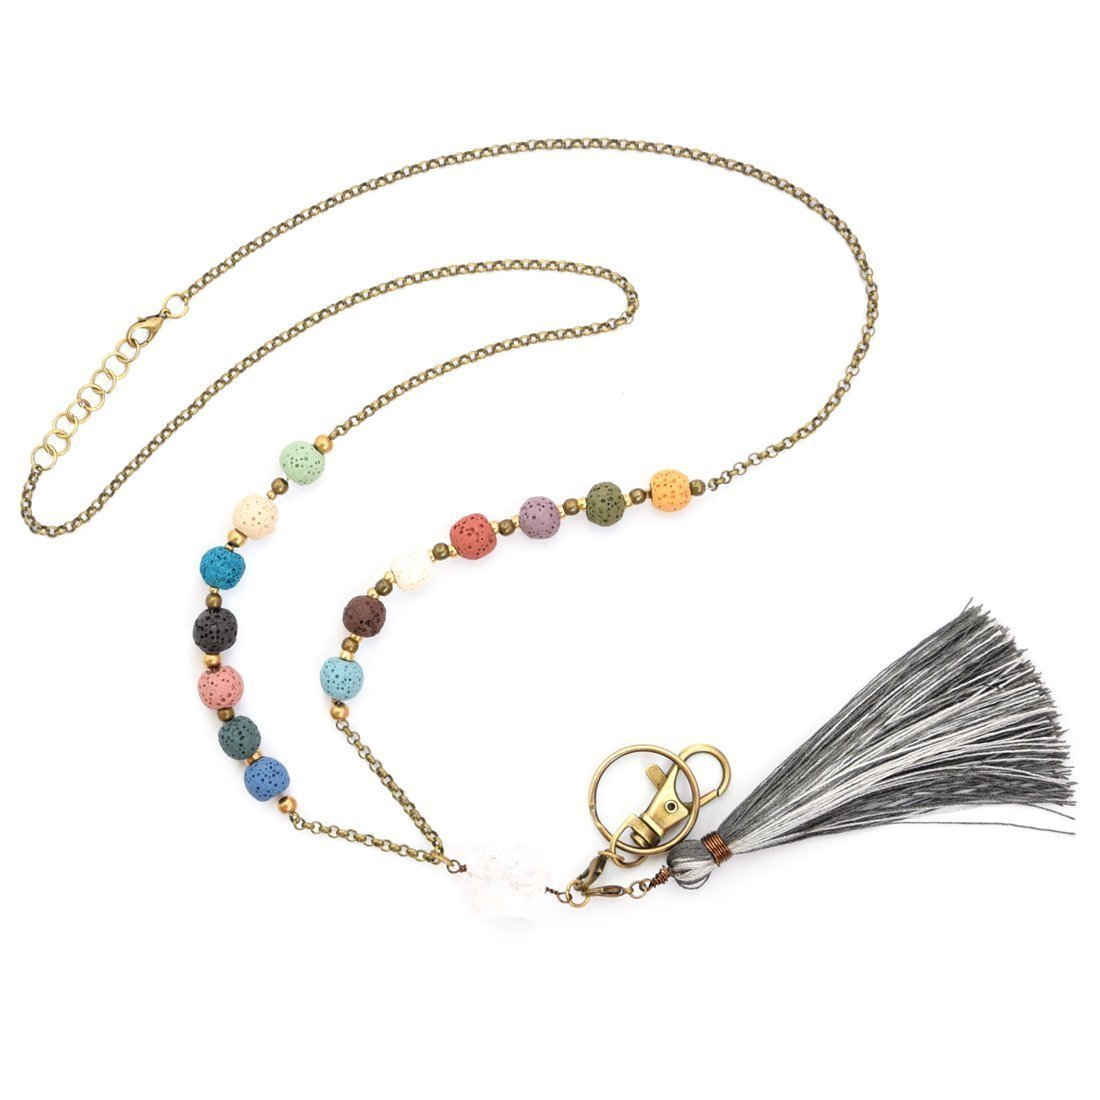 Crimmy - Fashion Beaded Necklace Lanyards for Women - Copper Chain ID Badge Holder 34'' - Jewelry ID Holder with Convertable Tassel and Hook - Essential Oils Diffuser